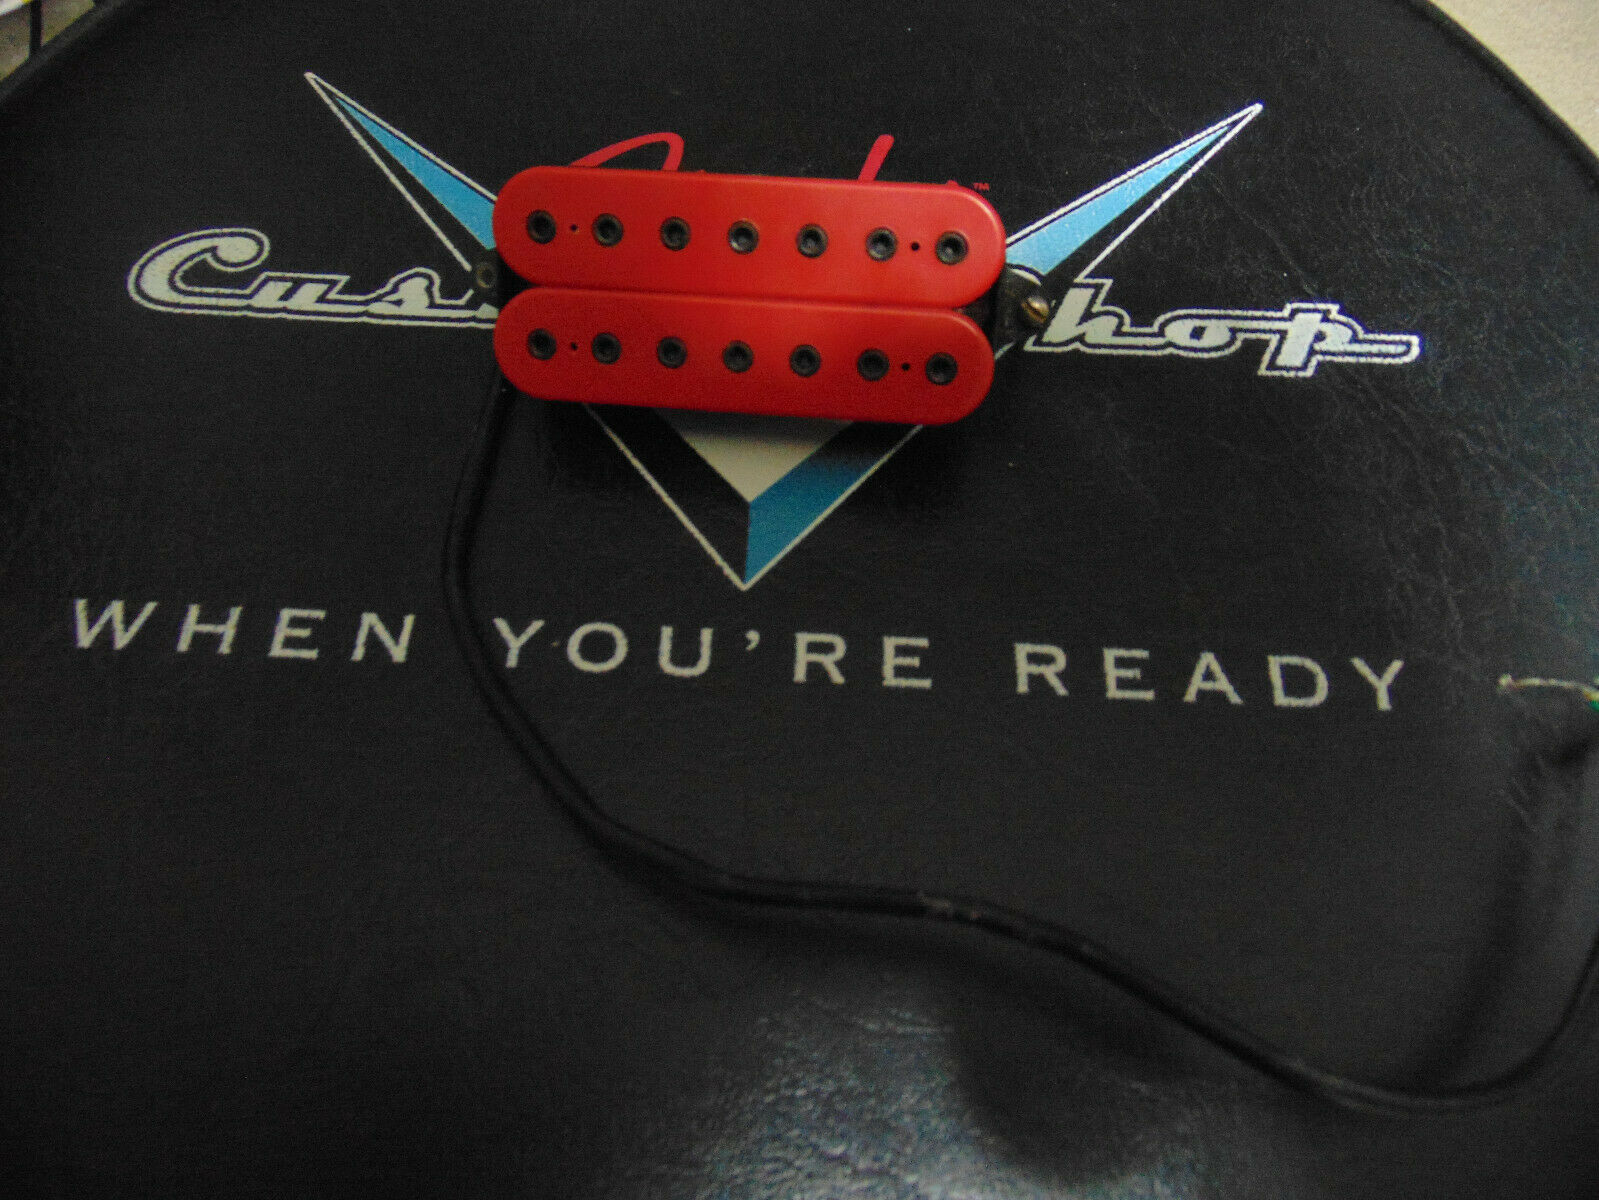 DIMARZIO Imperium 7 String Neck Humbucker Red With Black Poles DIRECT MOUNT 11  - $59.99